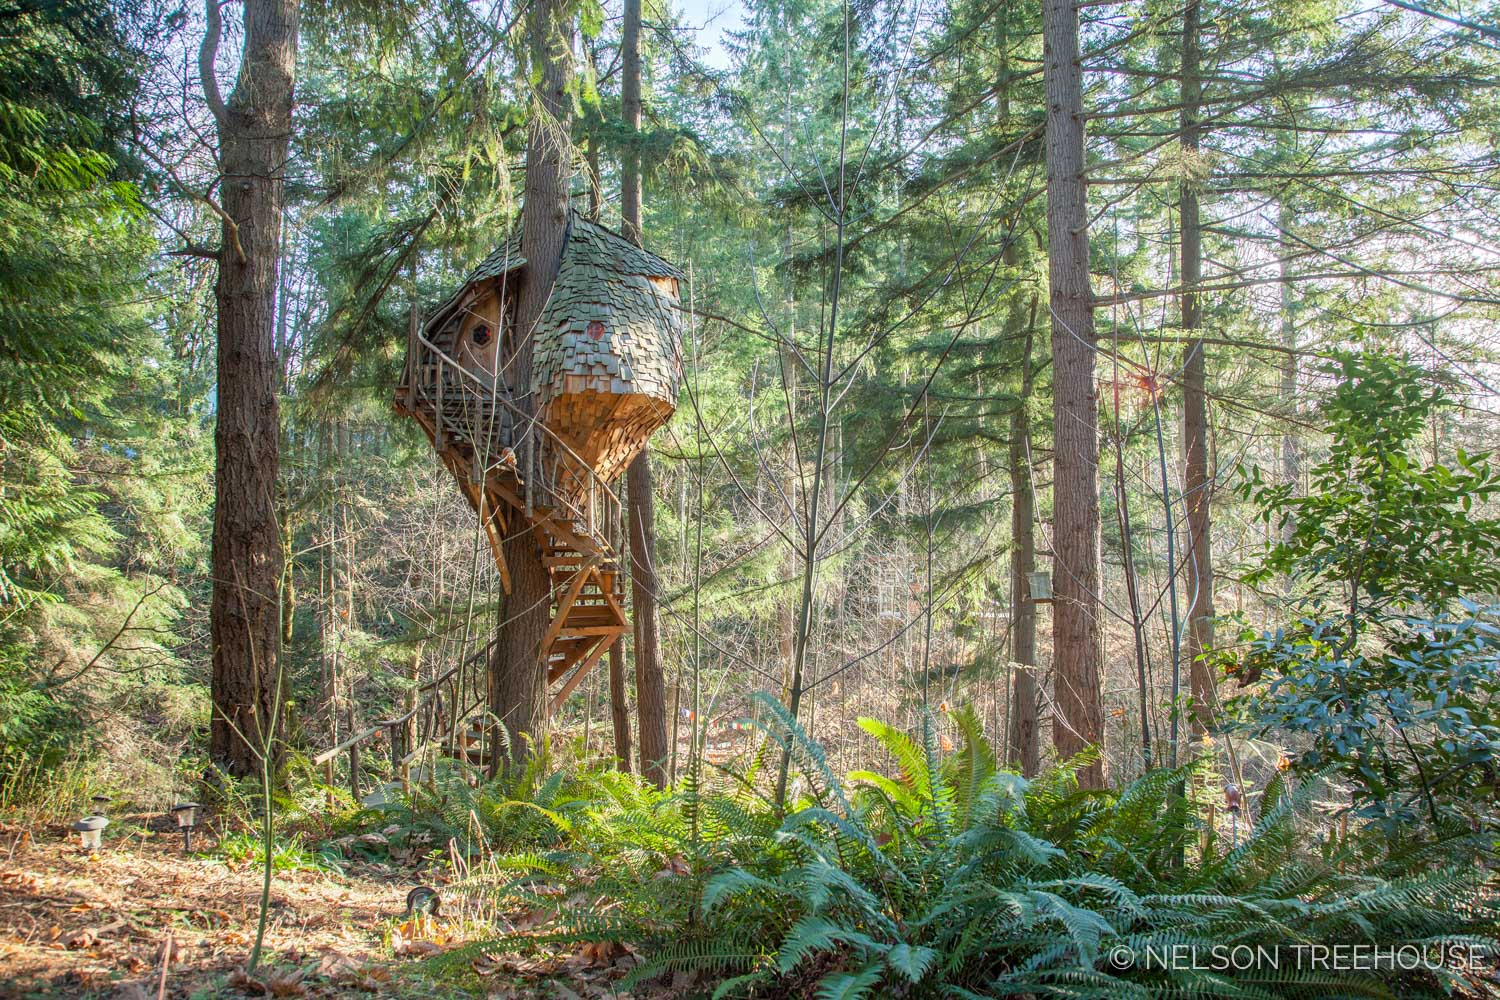 The Beehive Treehouse.